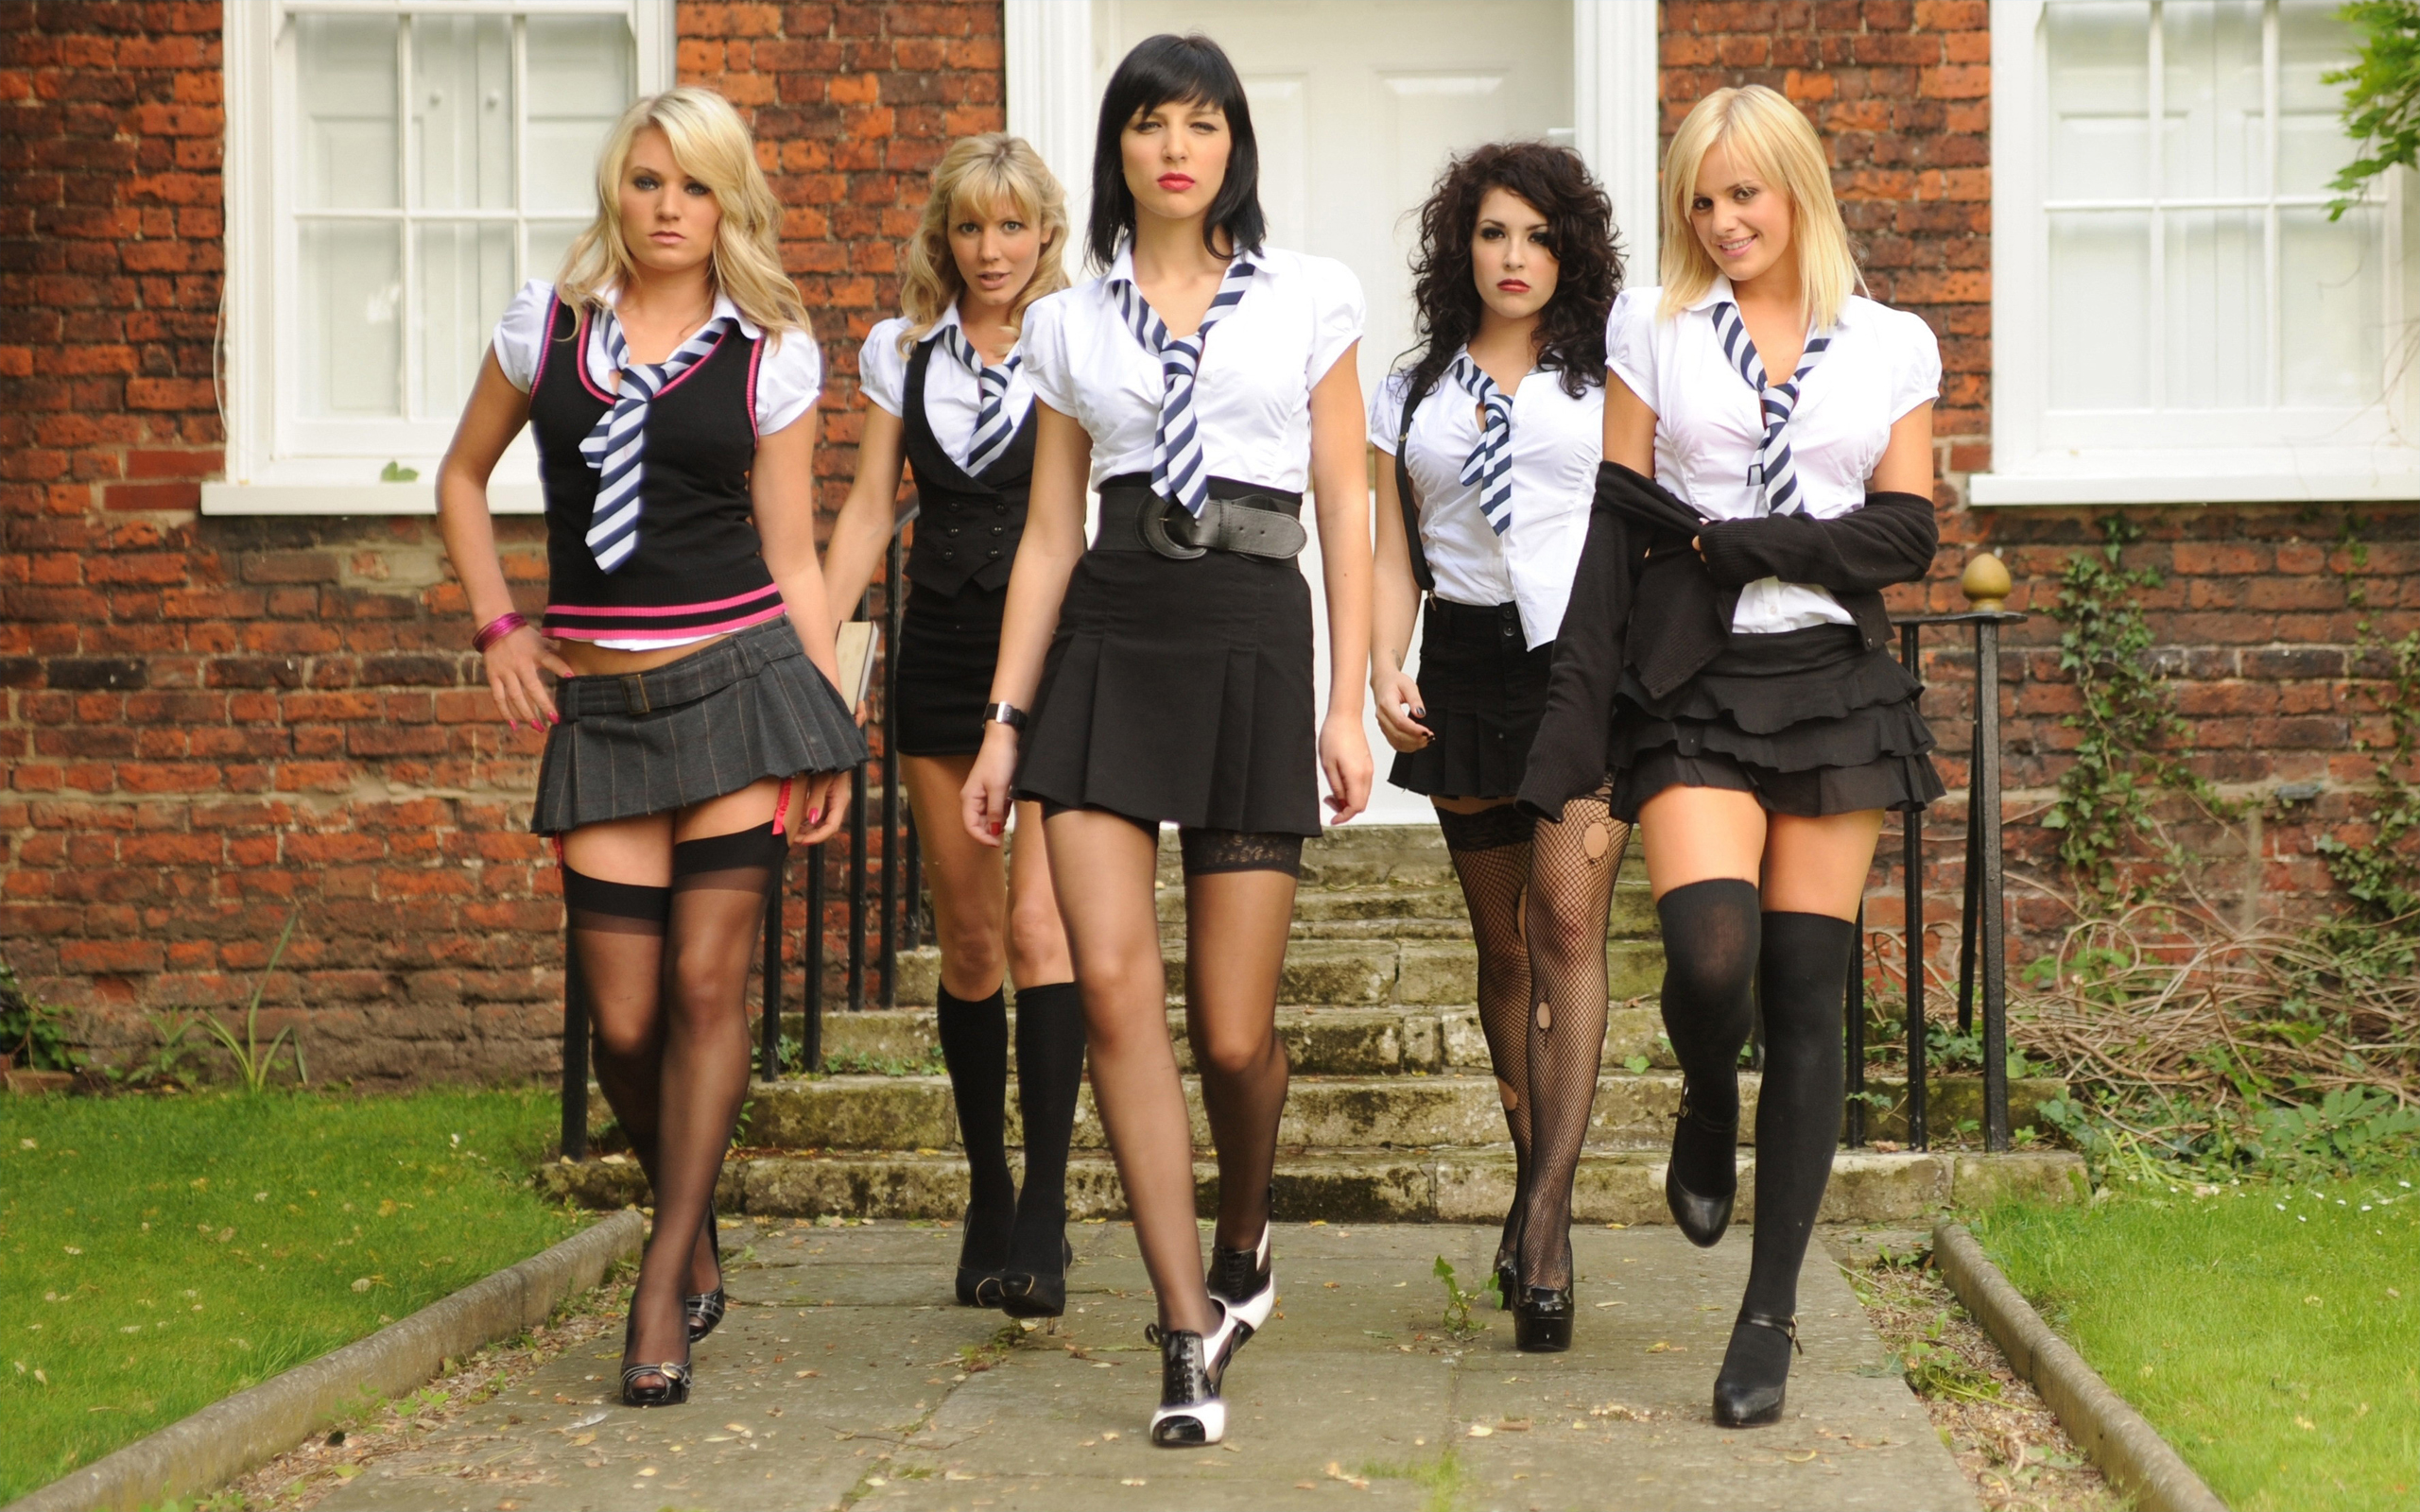 Photo schoolgirls in tights.